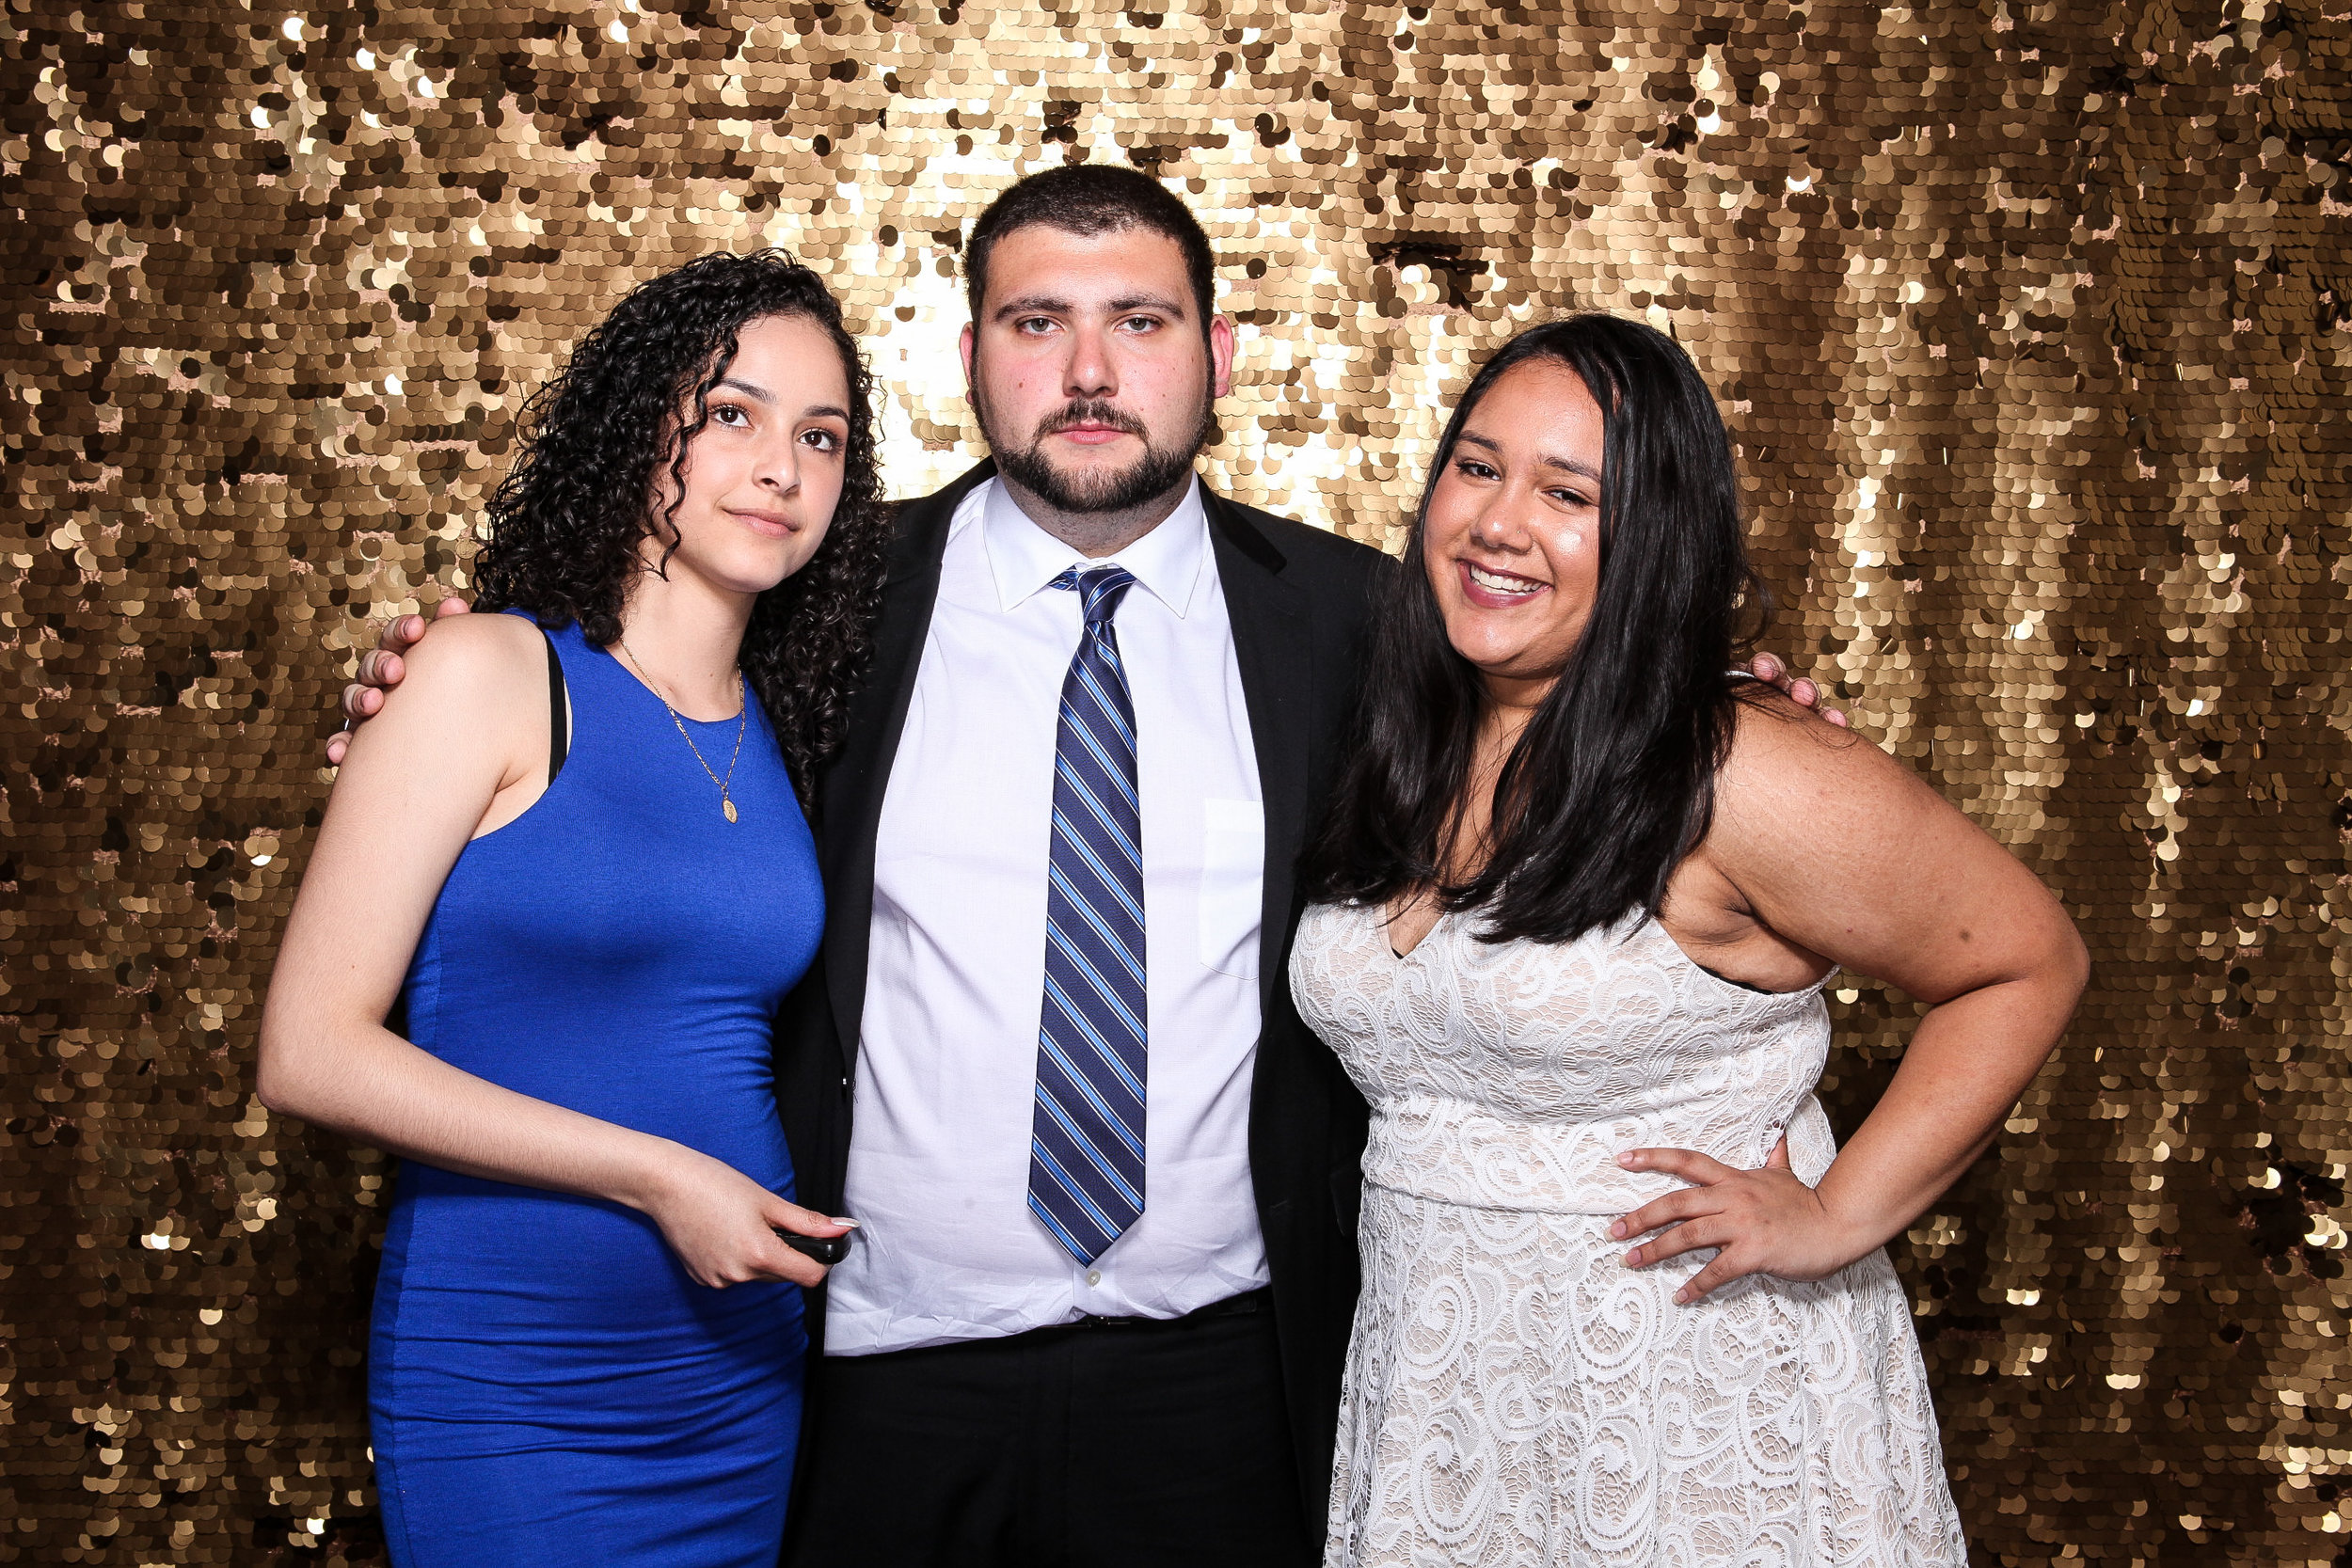 20190503_Adelphi_Senior_Formal-391.jpg